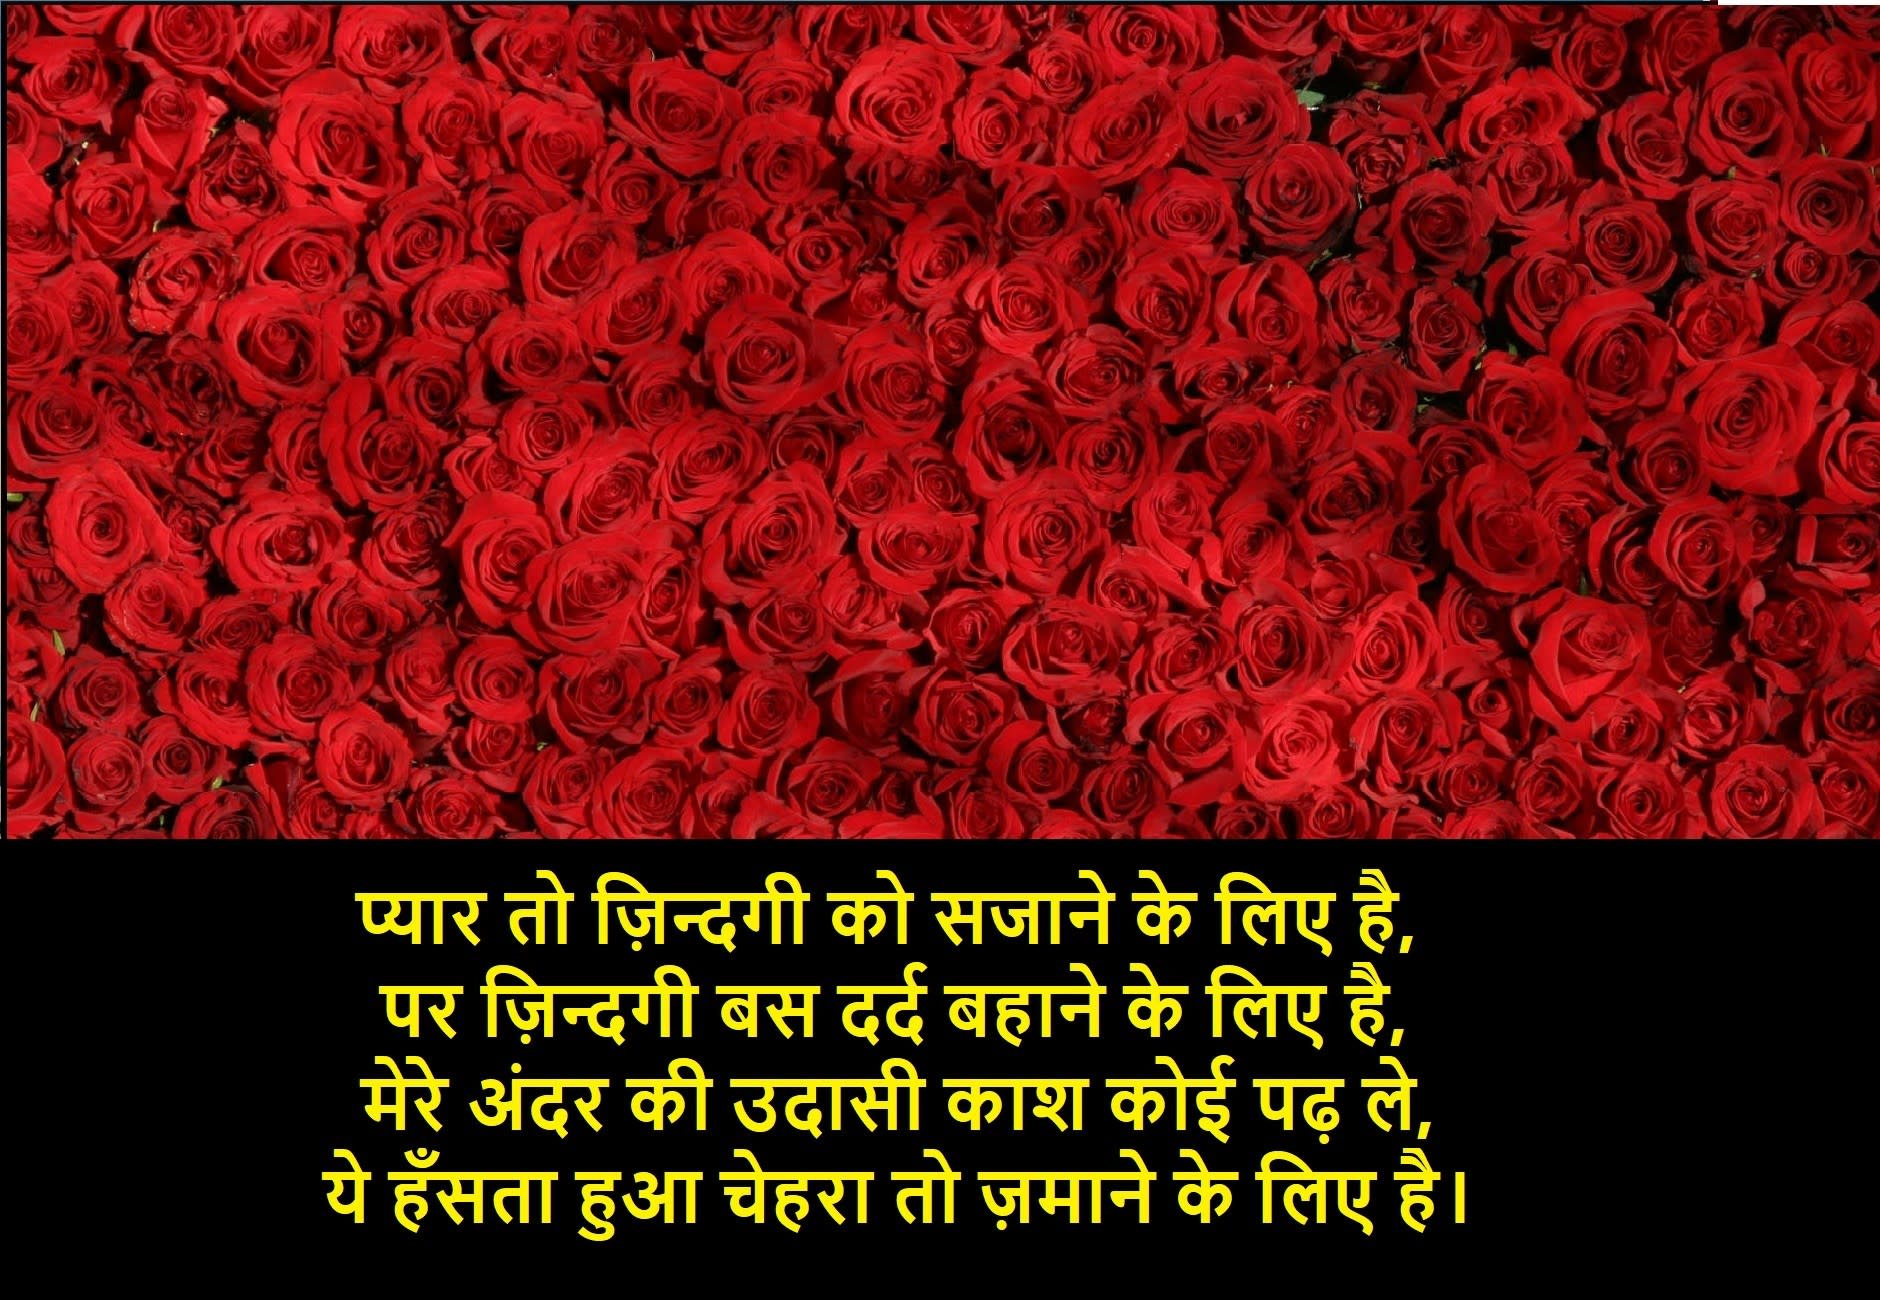 Urdu Shayari for love